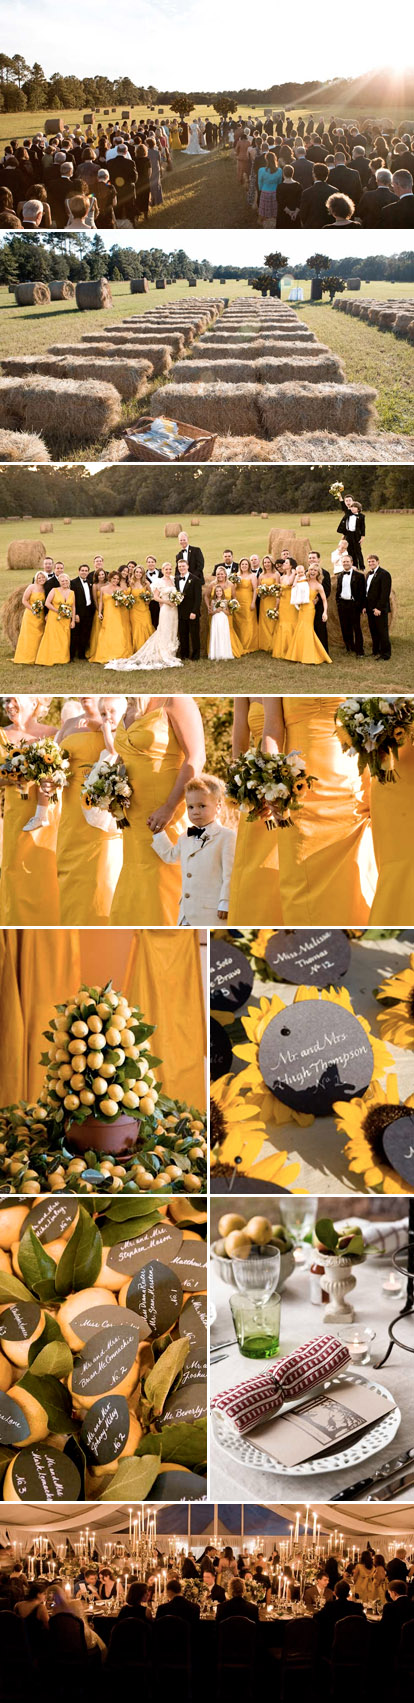 Sophisticated, elegant Southern real wedding in black, white, lemon yellow and green, by Fete